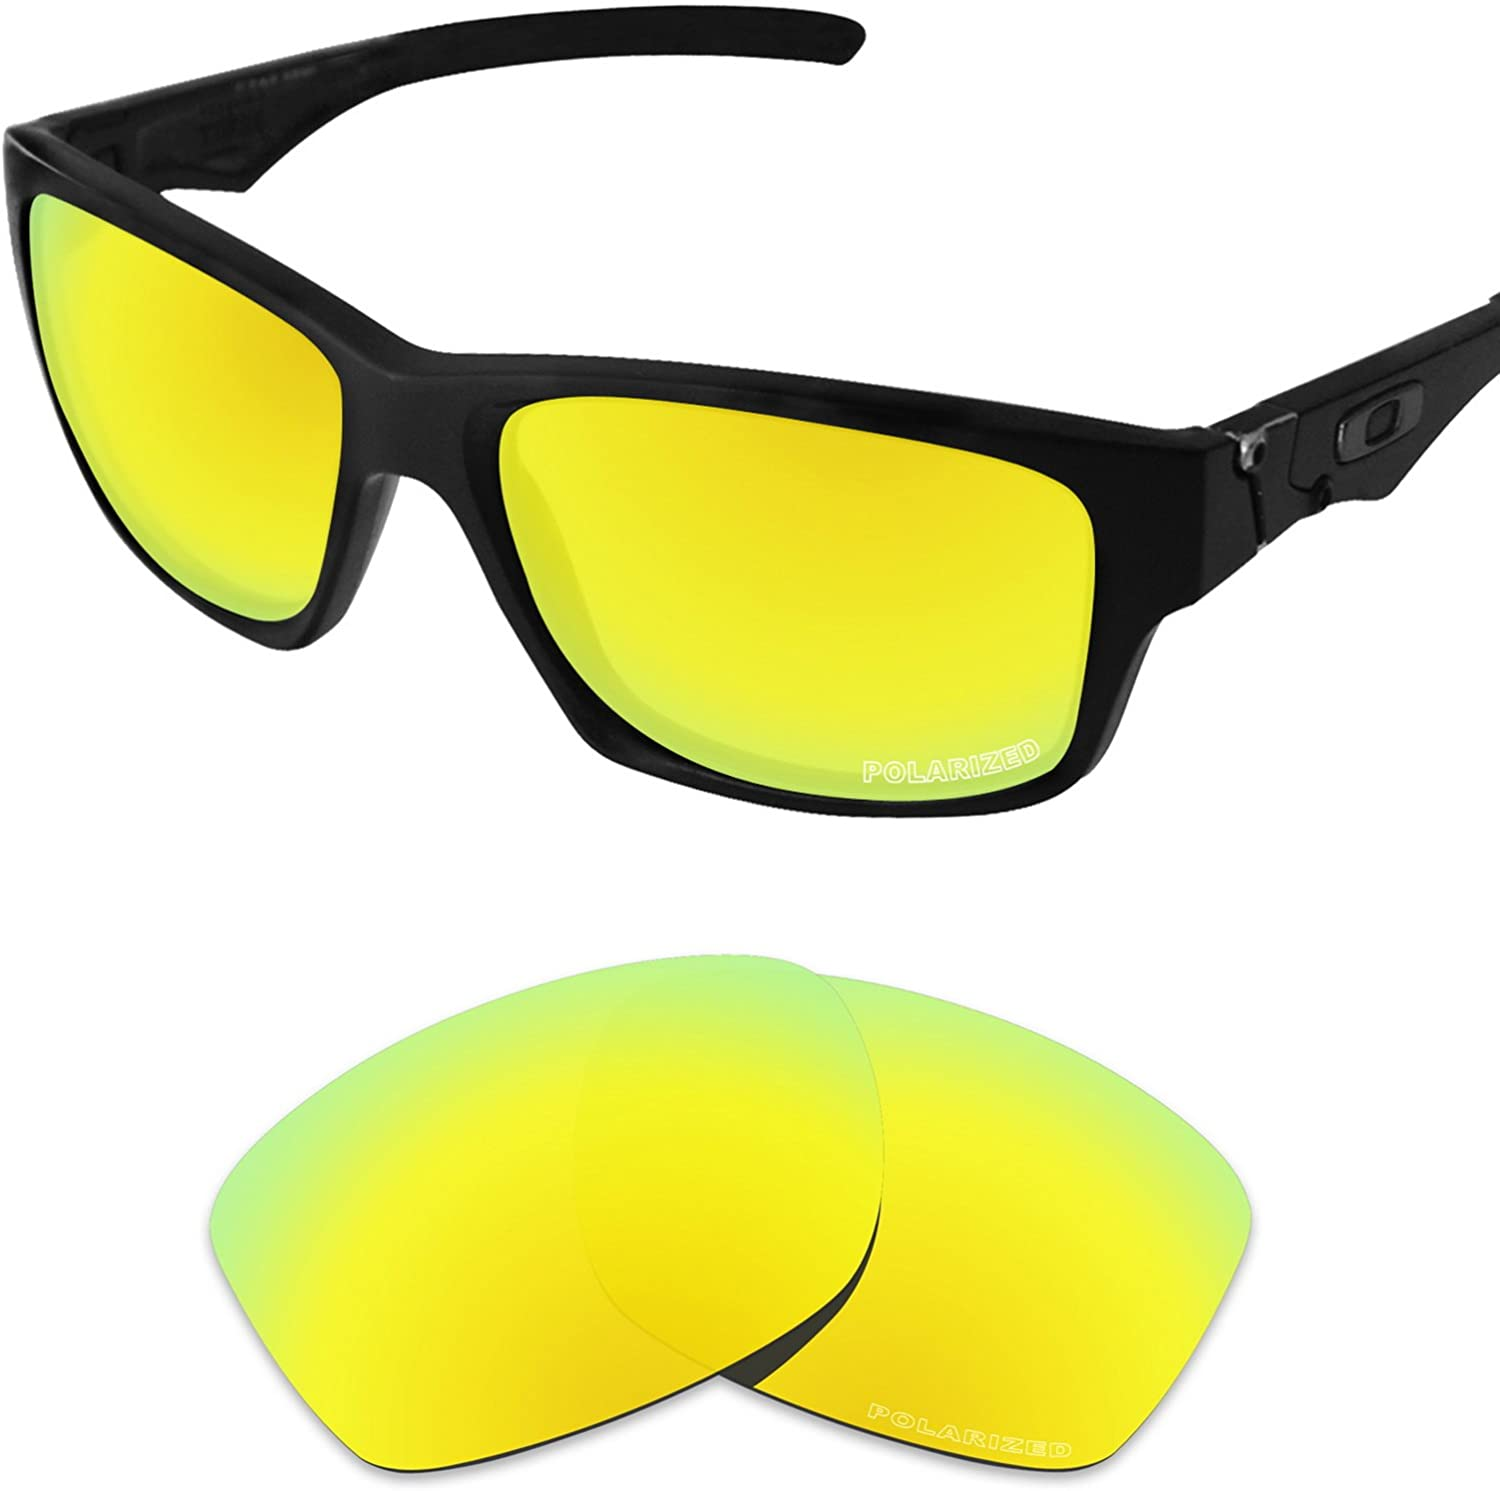 Tintart Performance Lenses Compatible with Oakley Jupiter Squared Polarized Etched